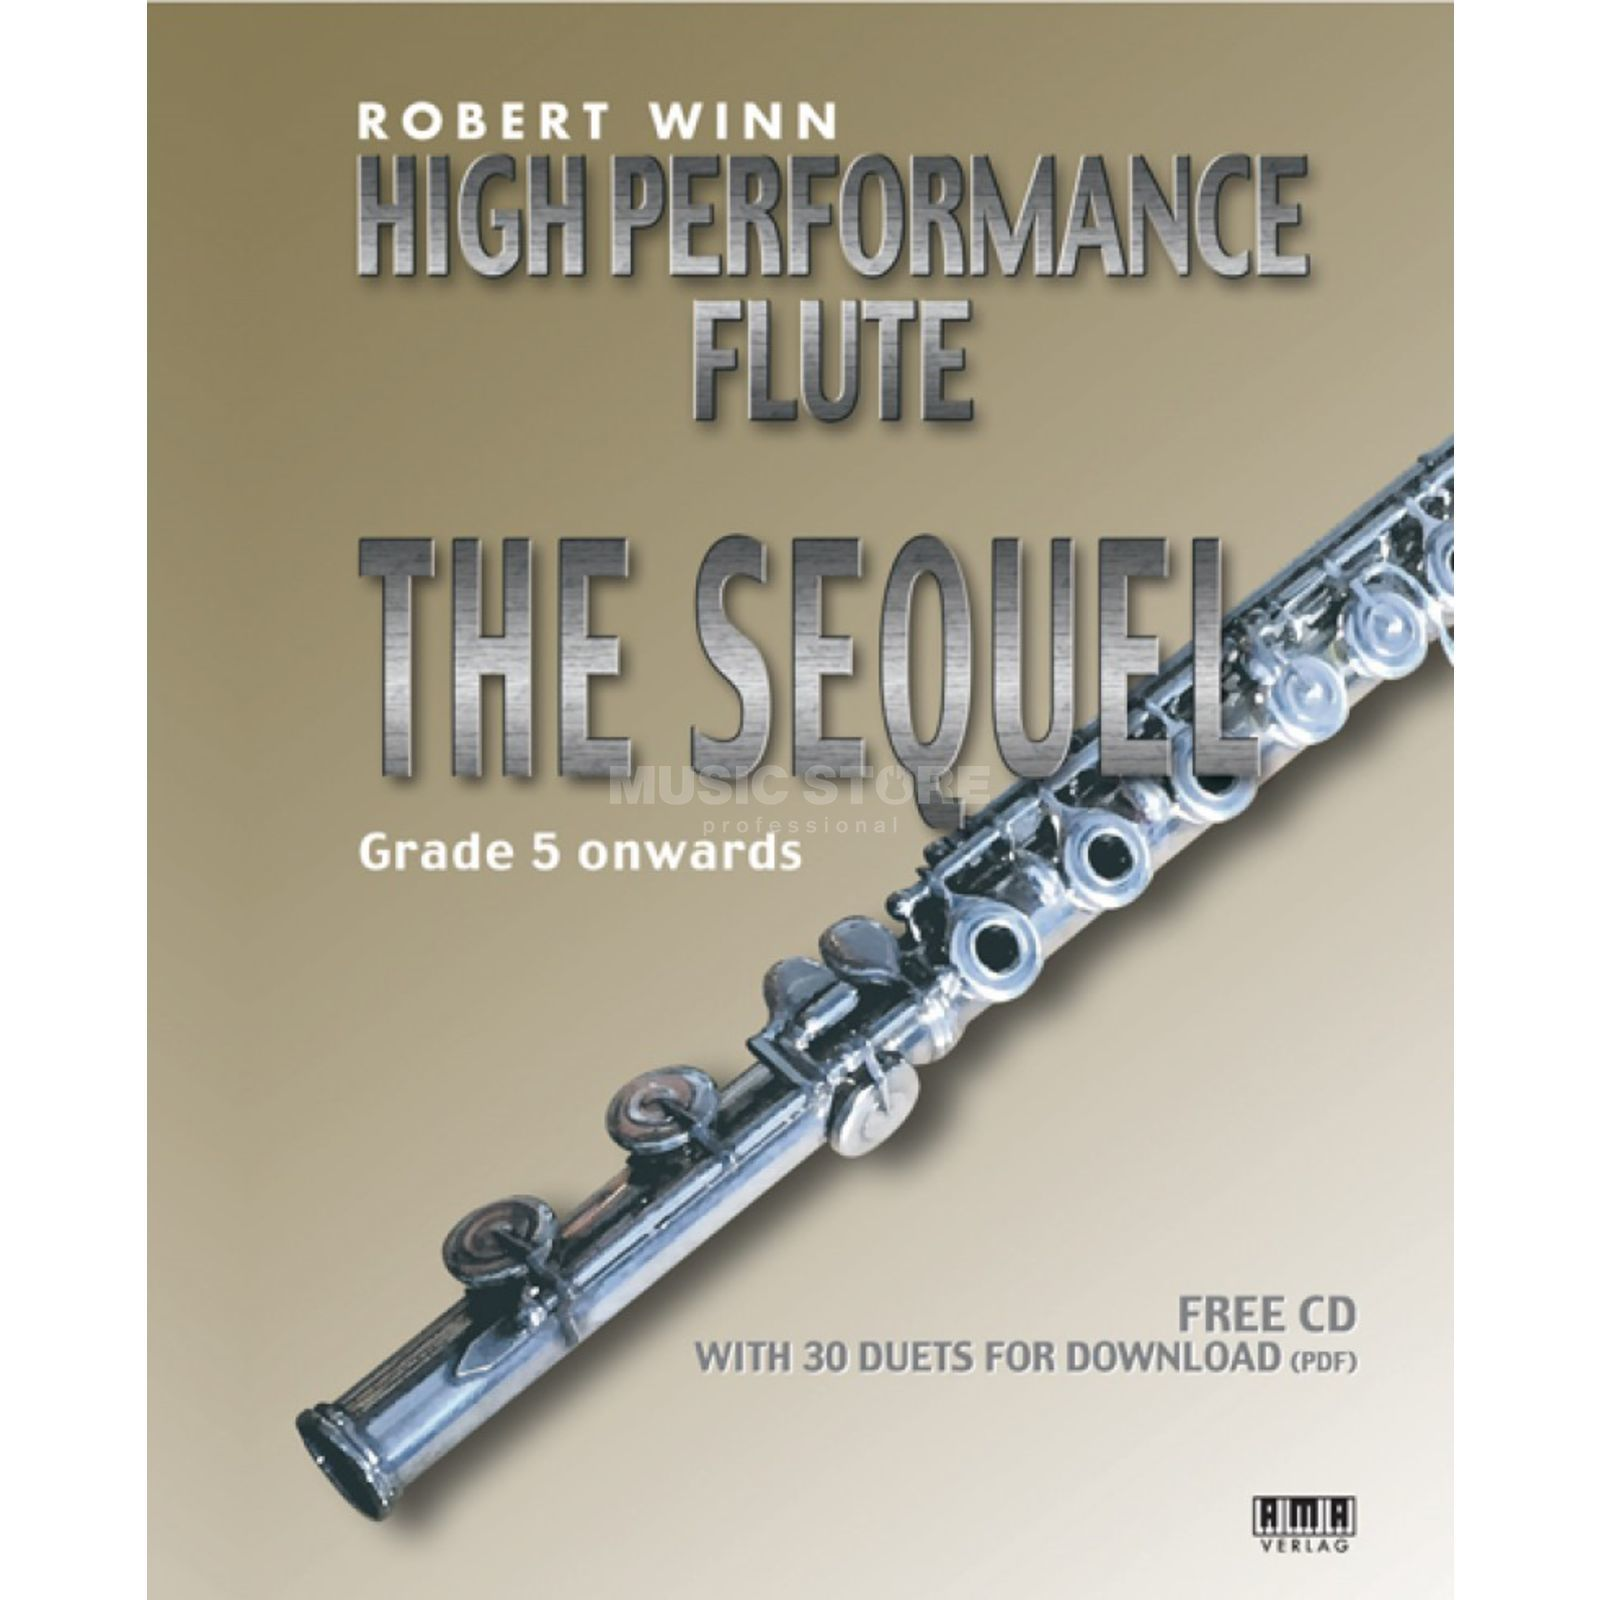 AMA Verlag High Performance Flute - The Sequel Изображение товара